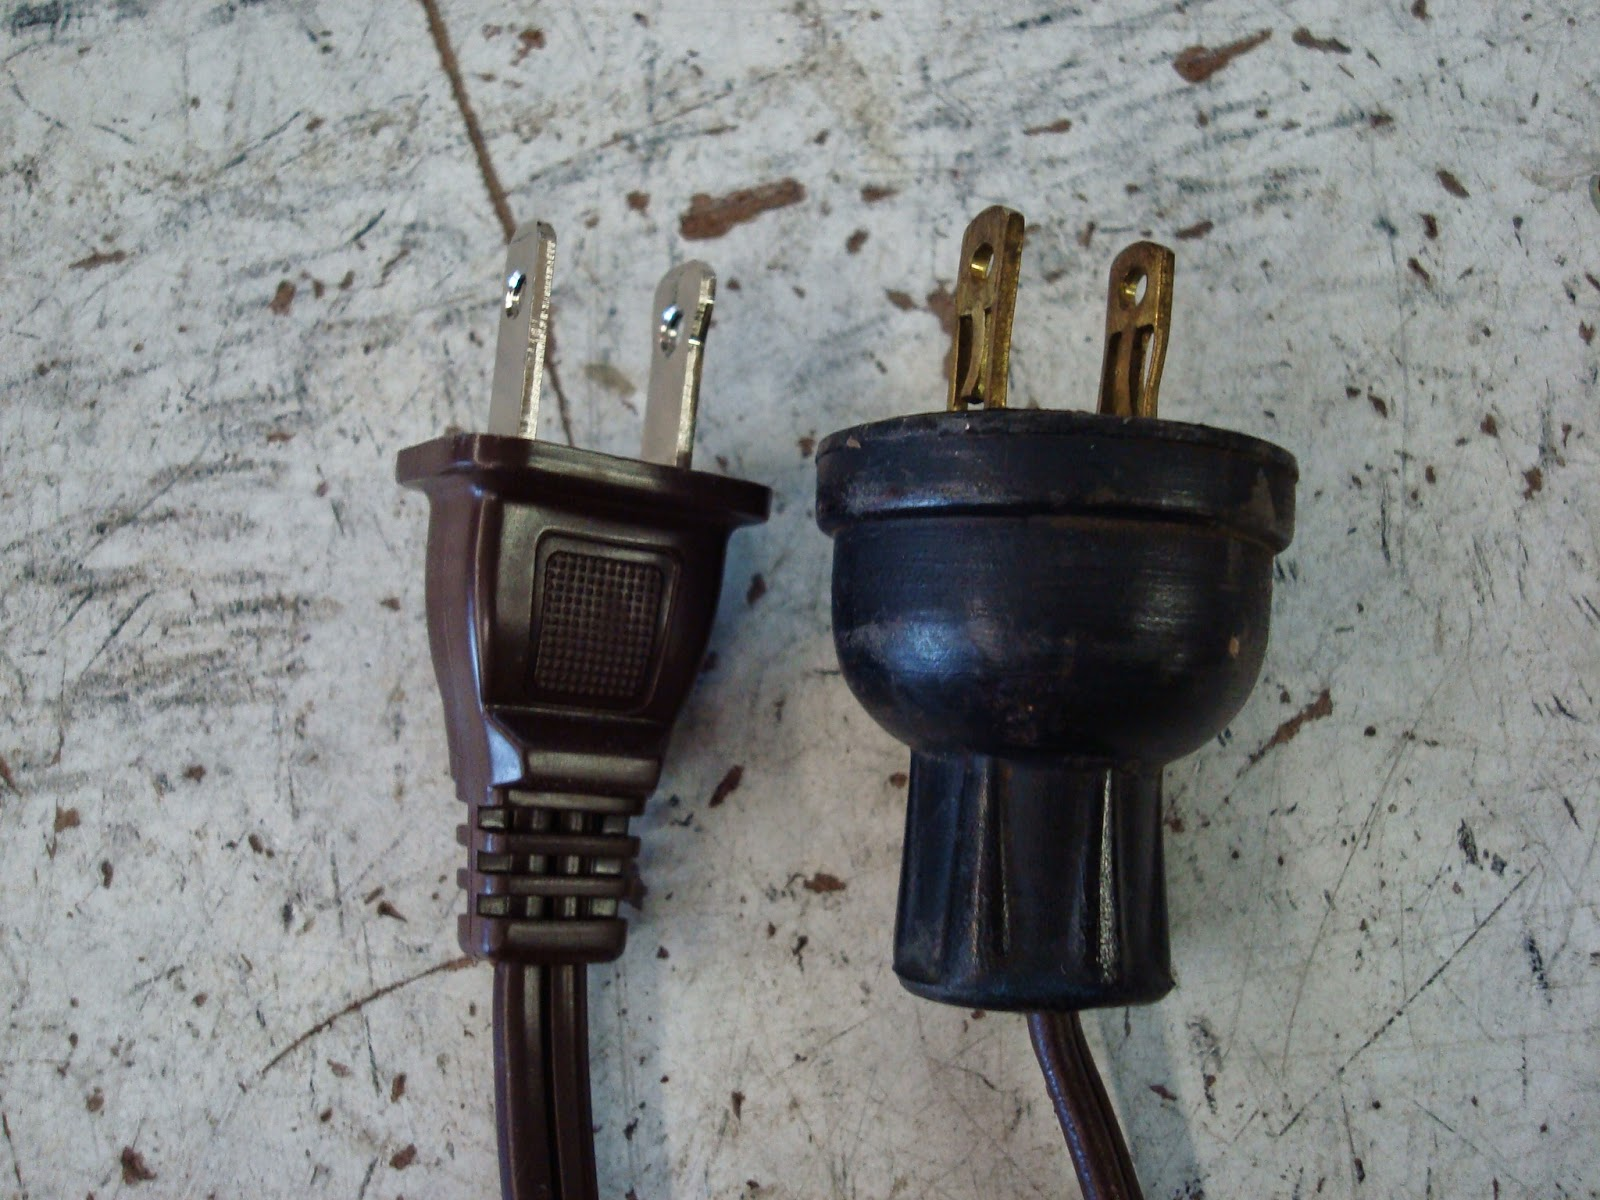 Lamp Parts and Repair | Lamp Doctor: Repair Tips